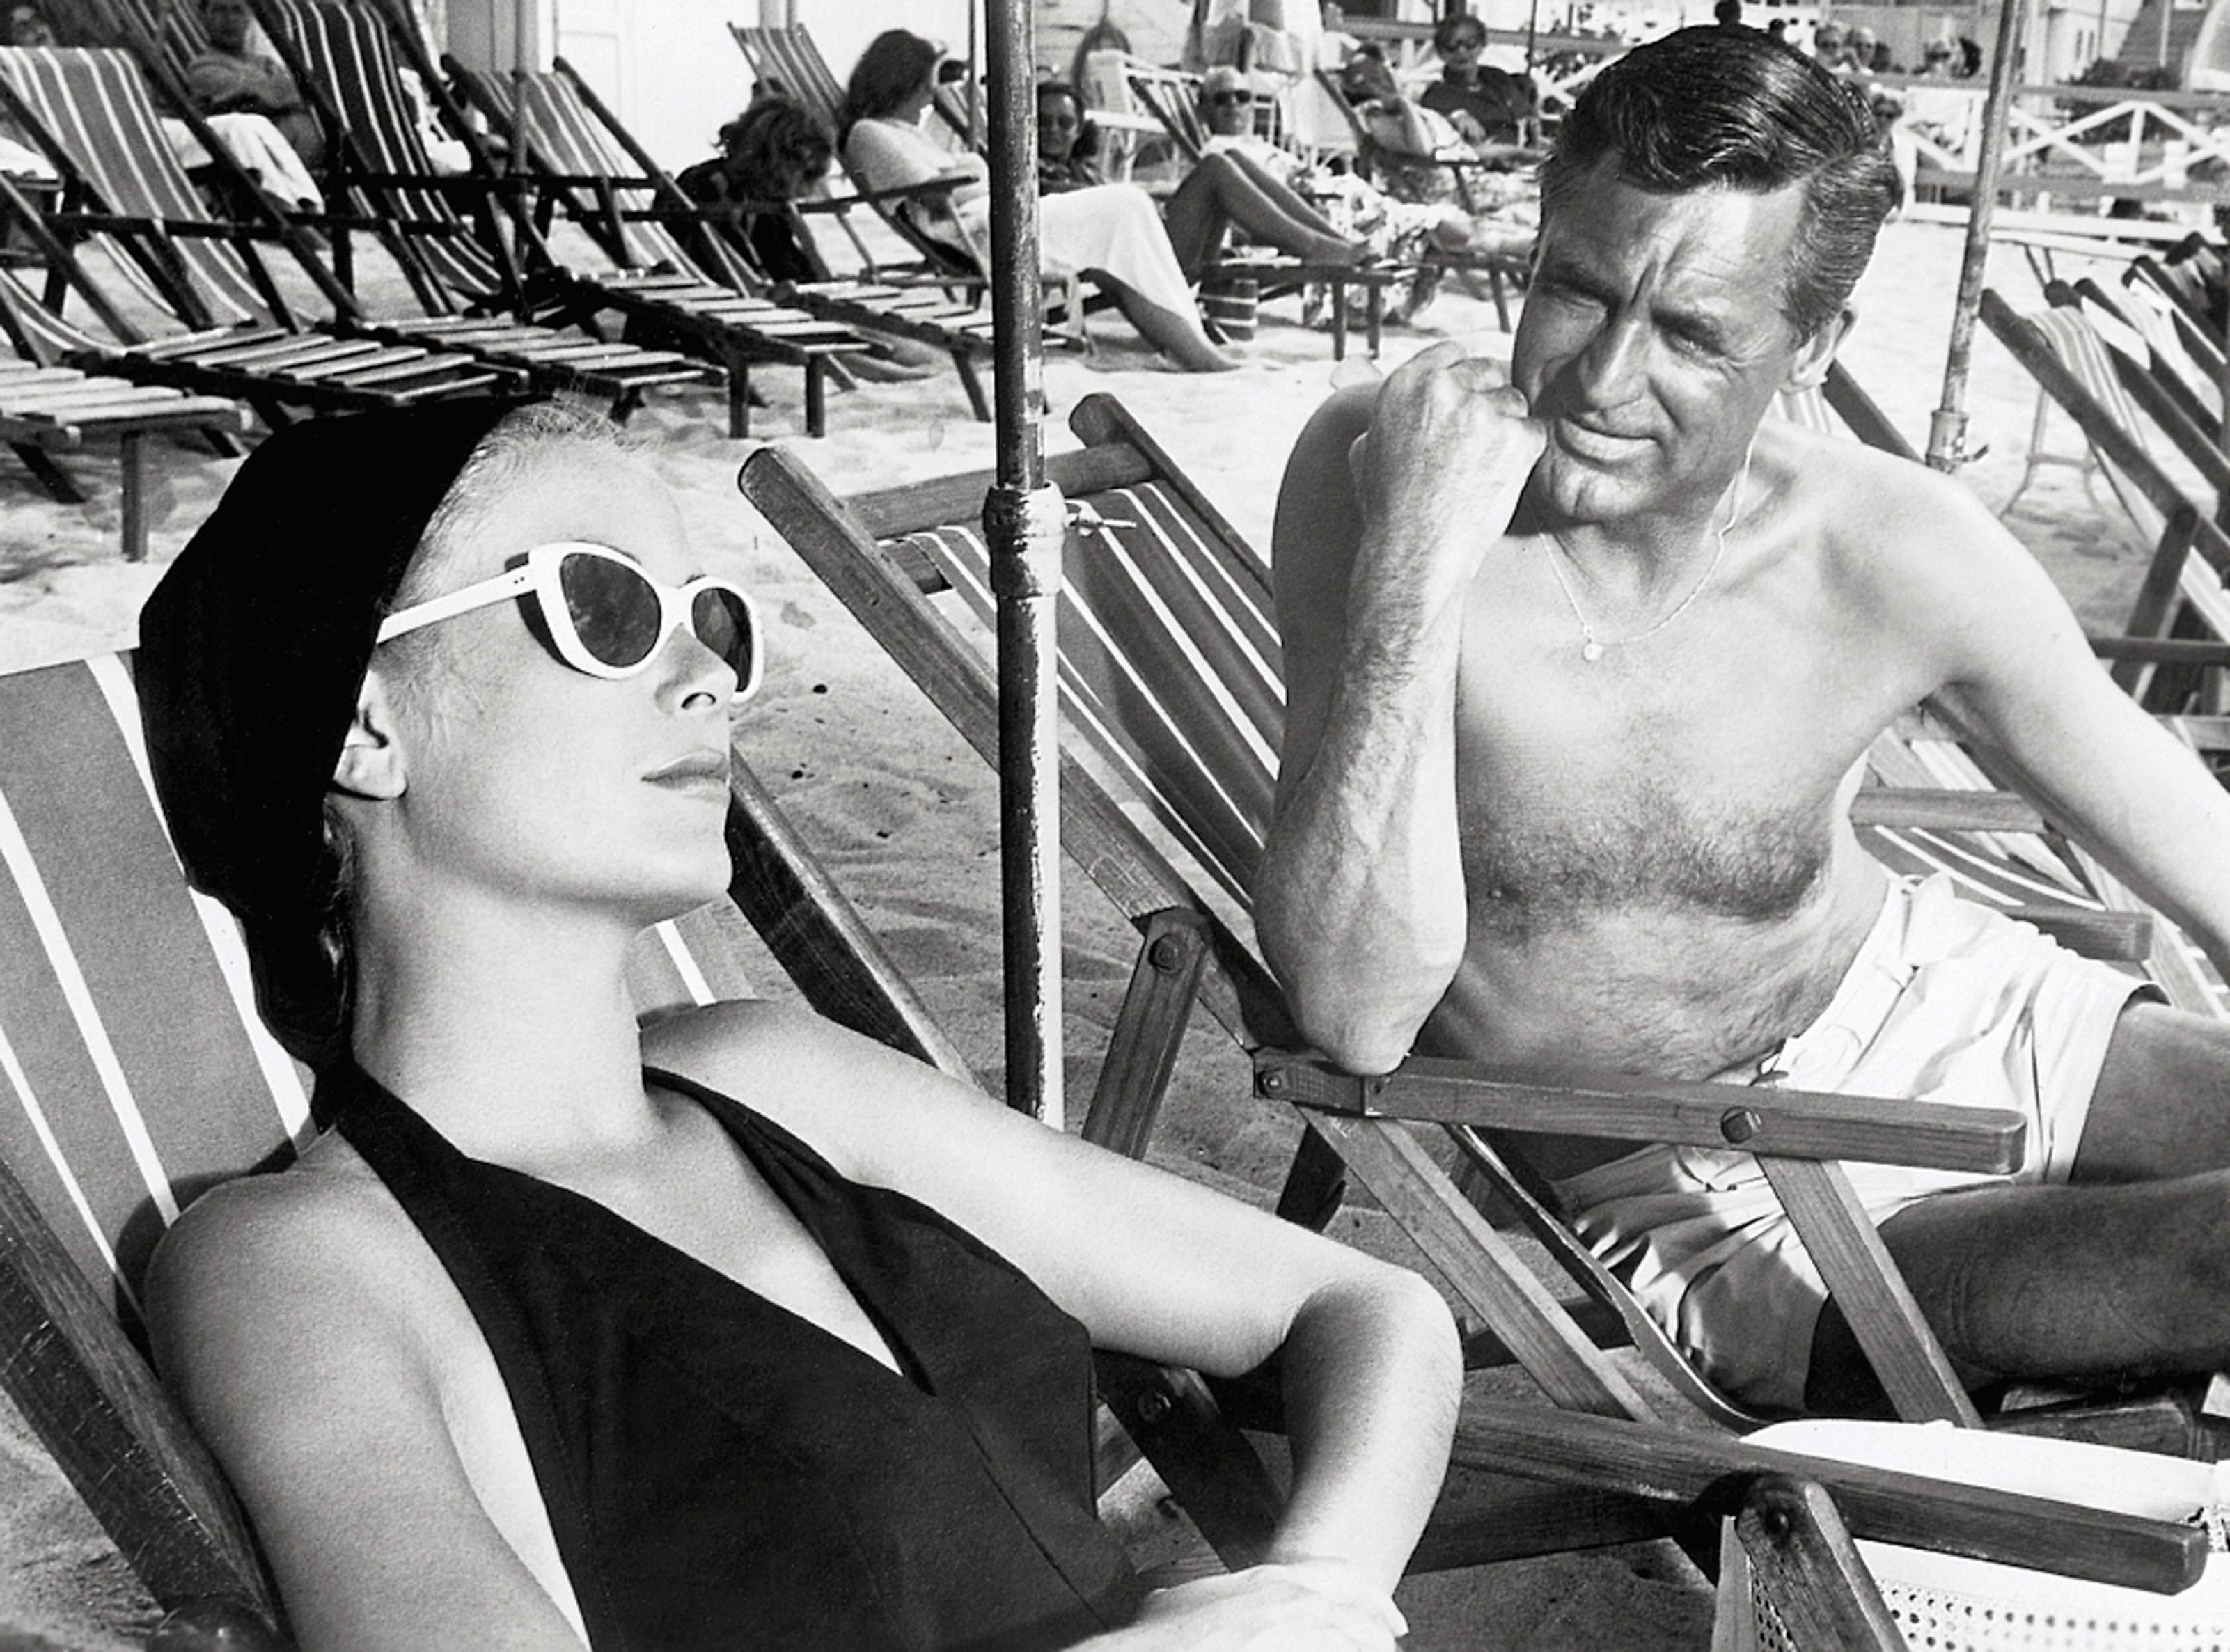 Cary Grant and Grace Kelly Lounging on Beach